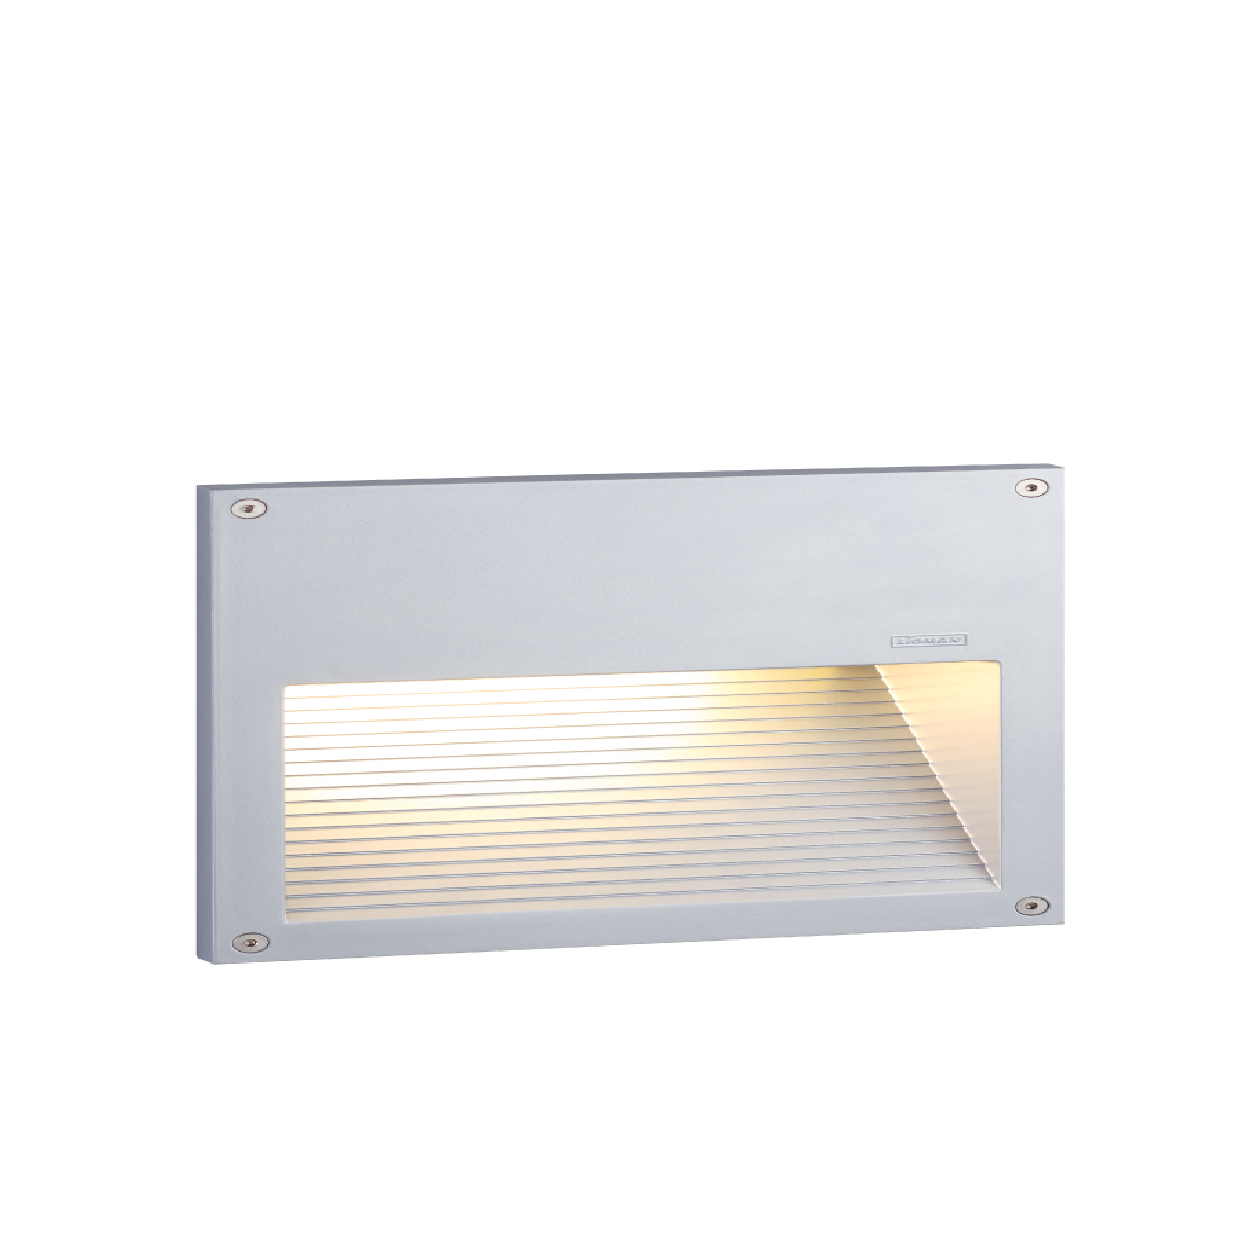 Rado 2 recessed led w27 w30 w40 up to 85 lumens recessed rado 2 recessed led w27 w30 w40 up to 85 lumens lighting productsoutdoor arubaitofo Gallery